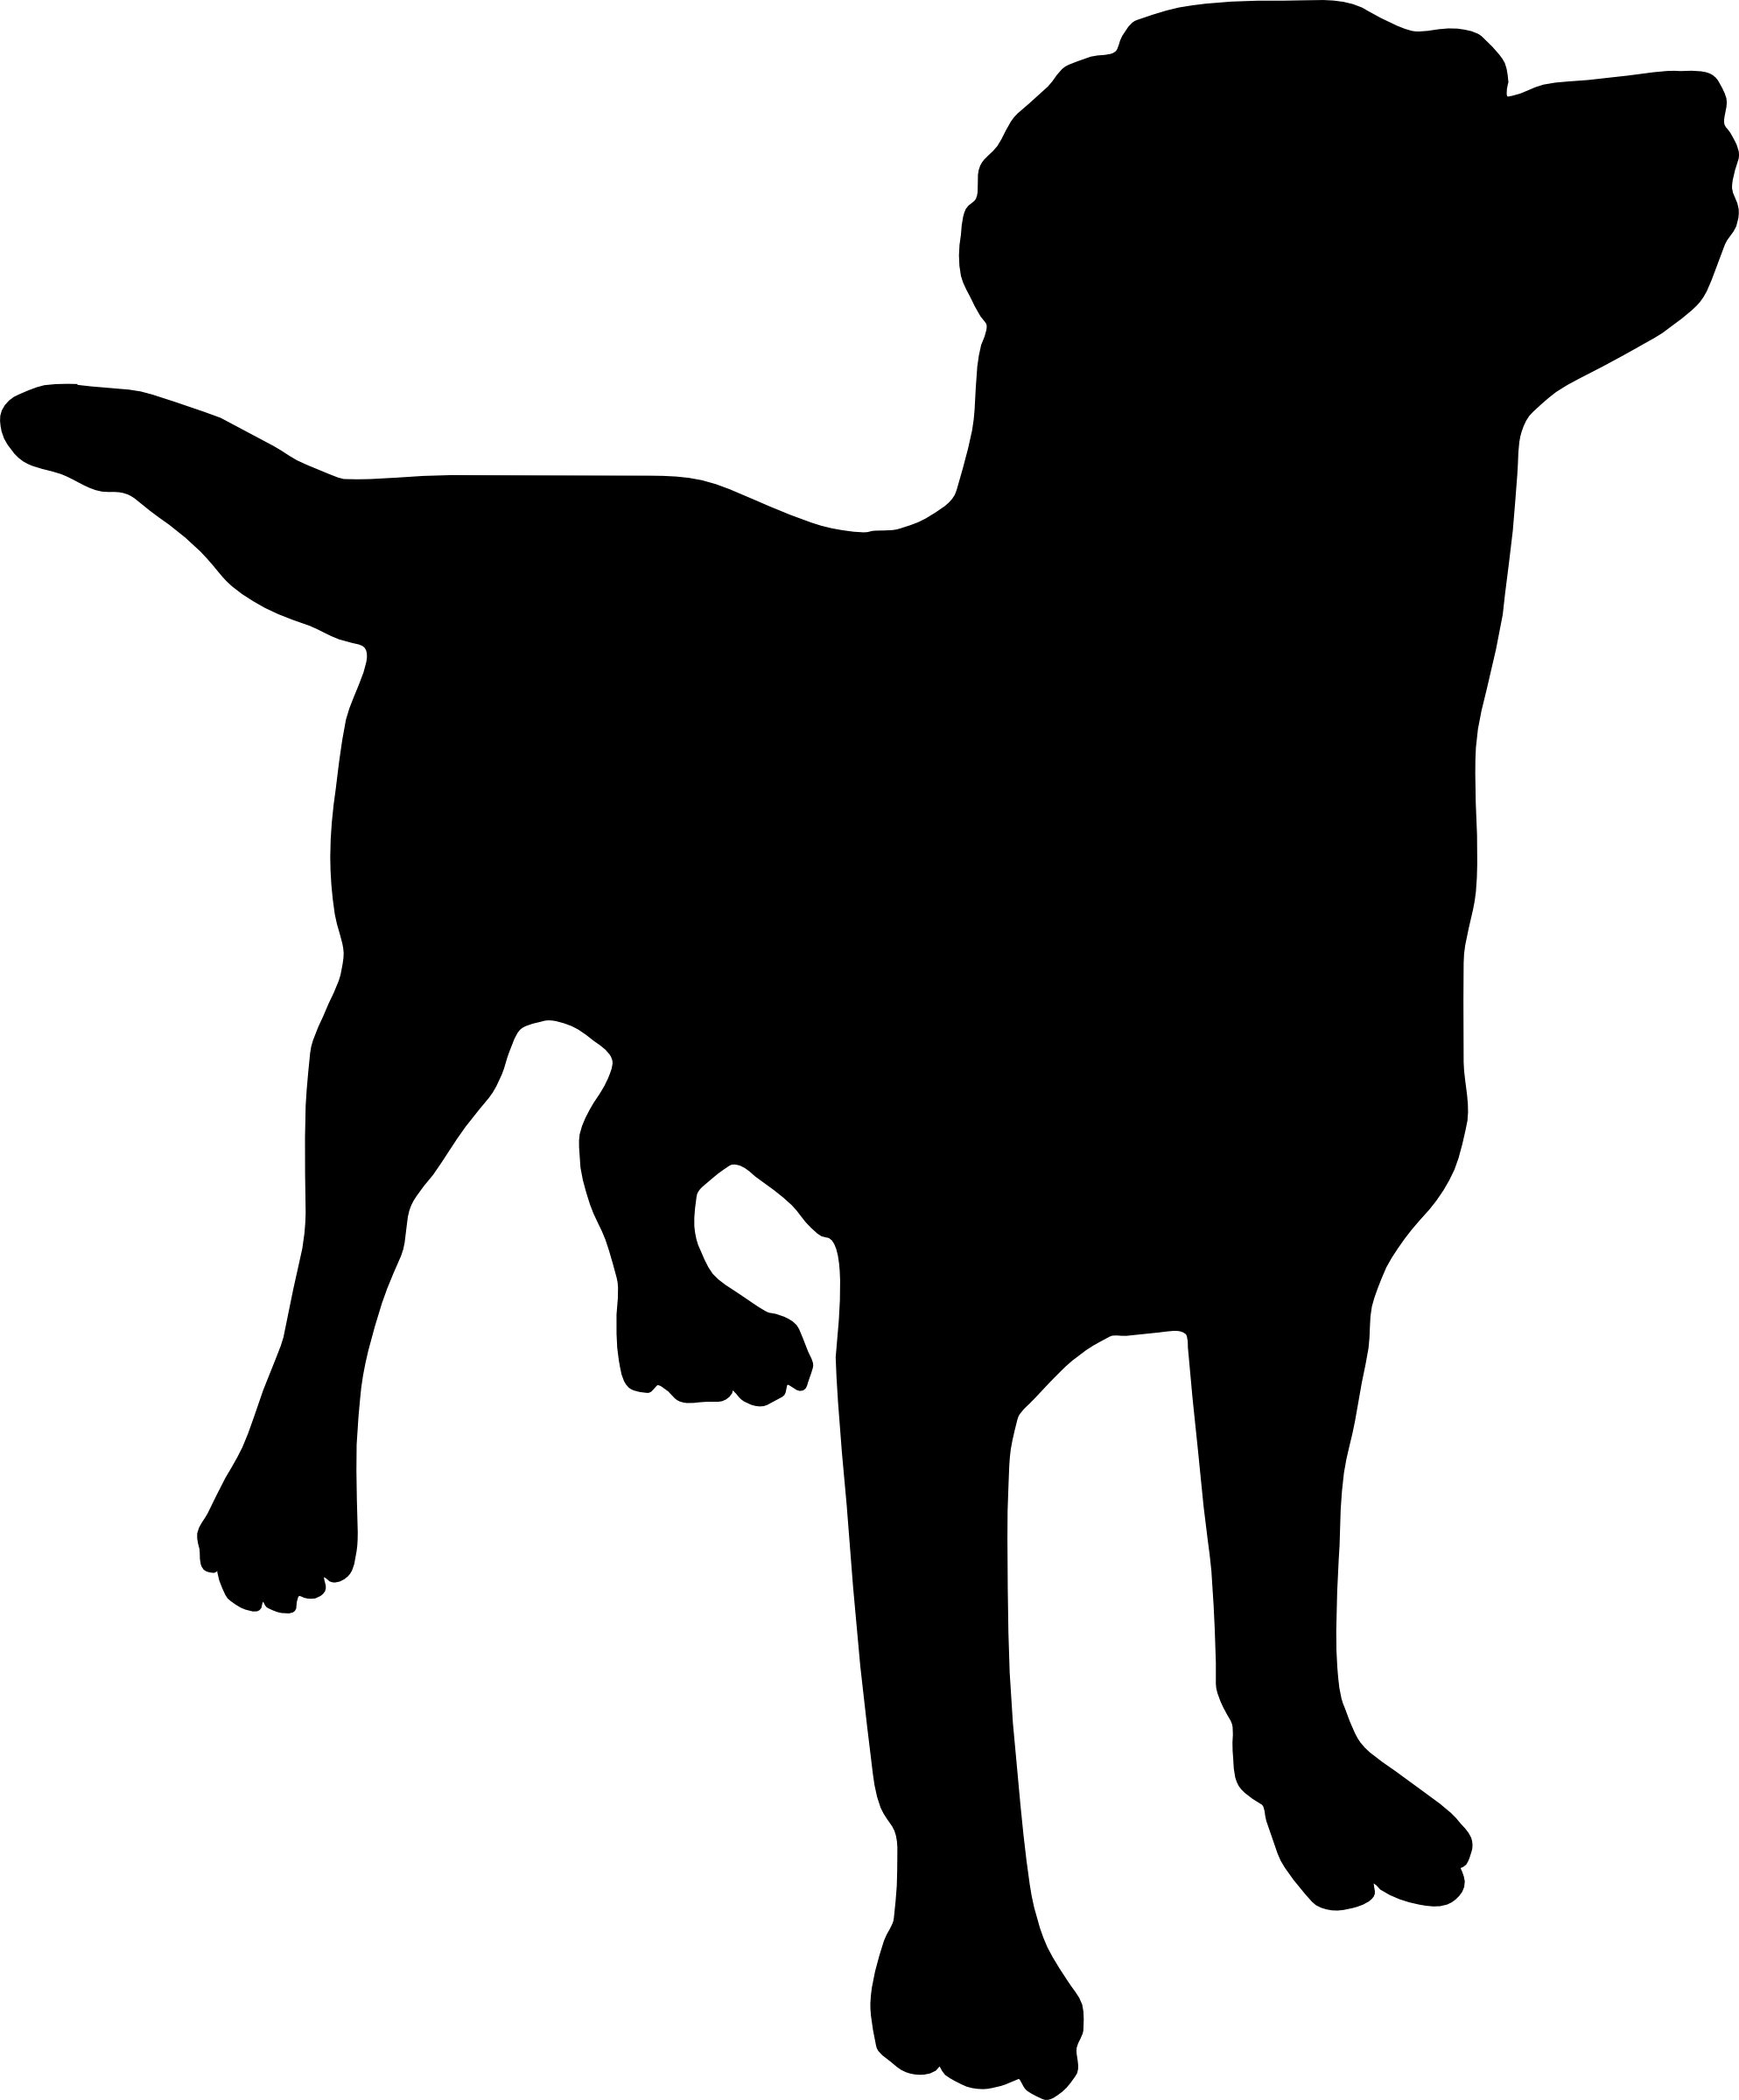 Cat and dog silhouette clipart clipart freeuse download Dog Cat Silhouette at GetDrawings.com | Free for personal use Dog ... clipart freeuse download